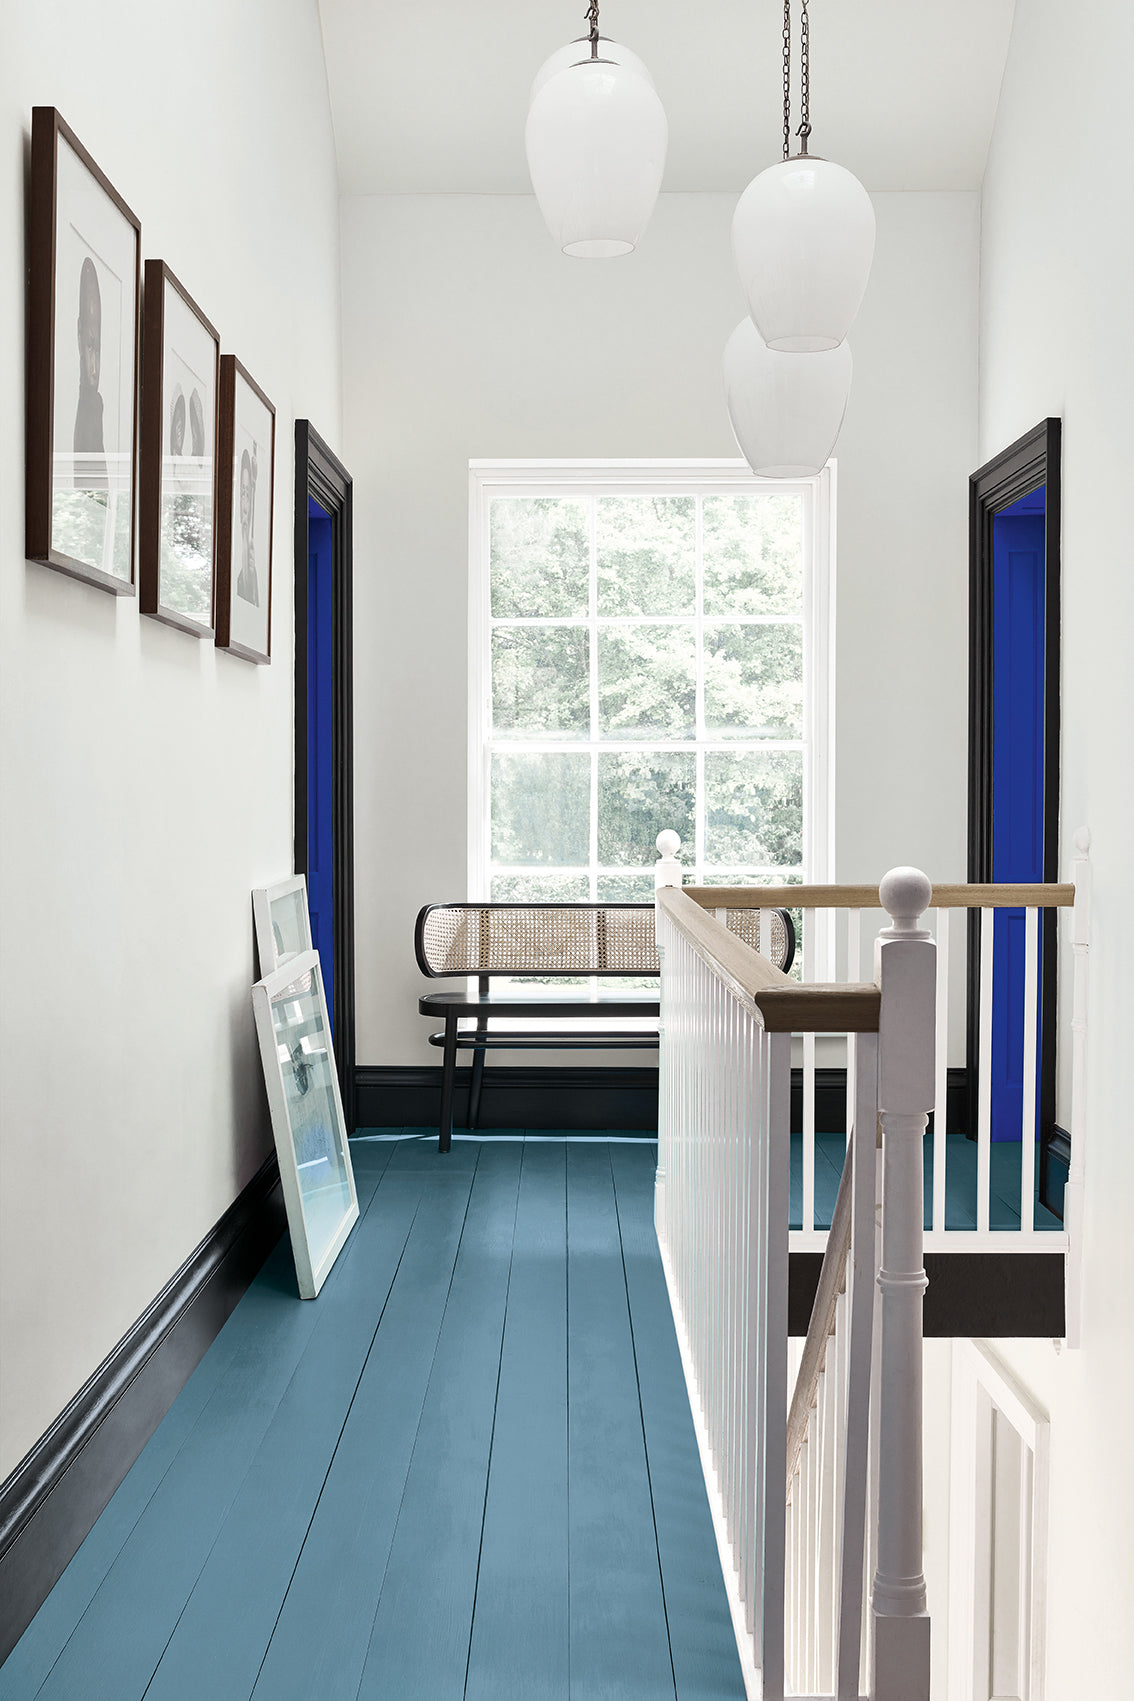 Bright landing with blue painted floorboards and white walls